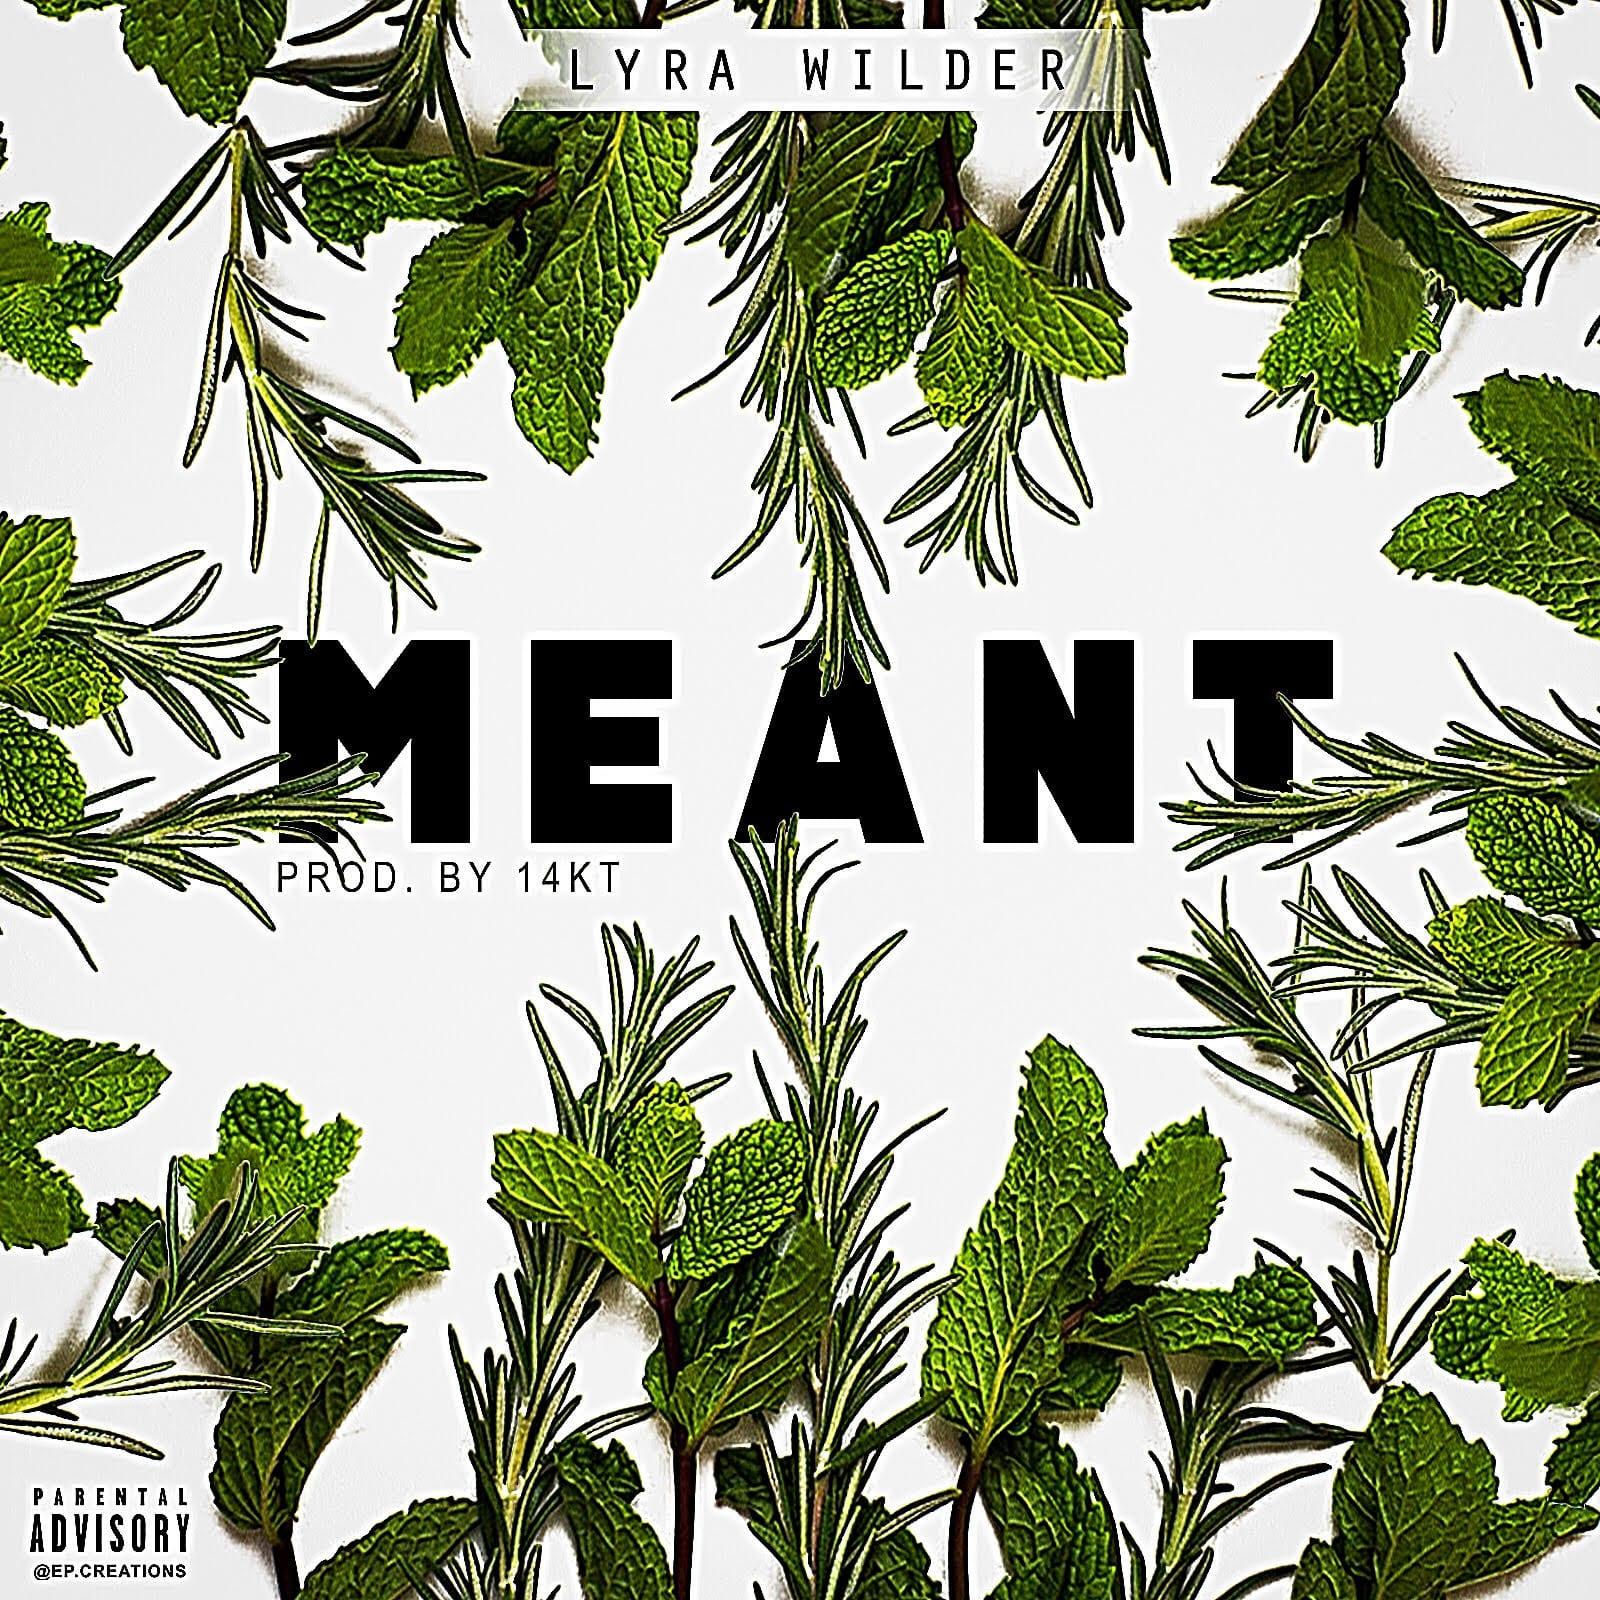 Lyra Wilder Drops New Single - MEANT